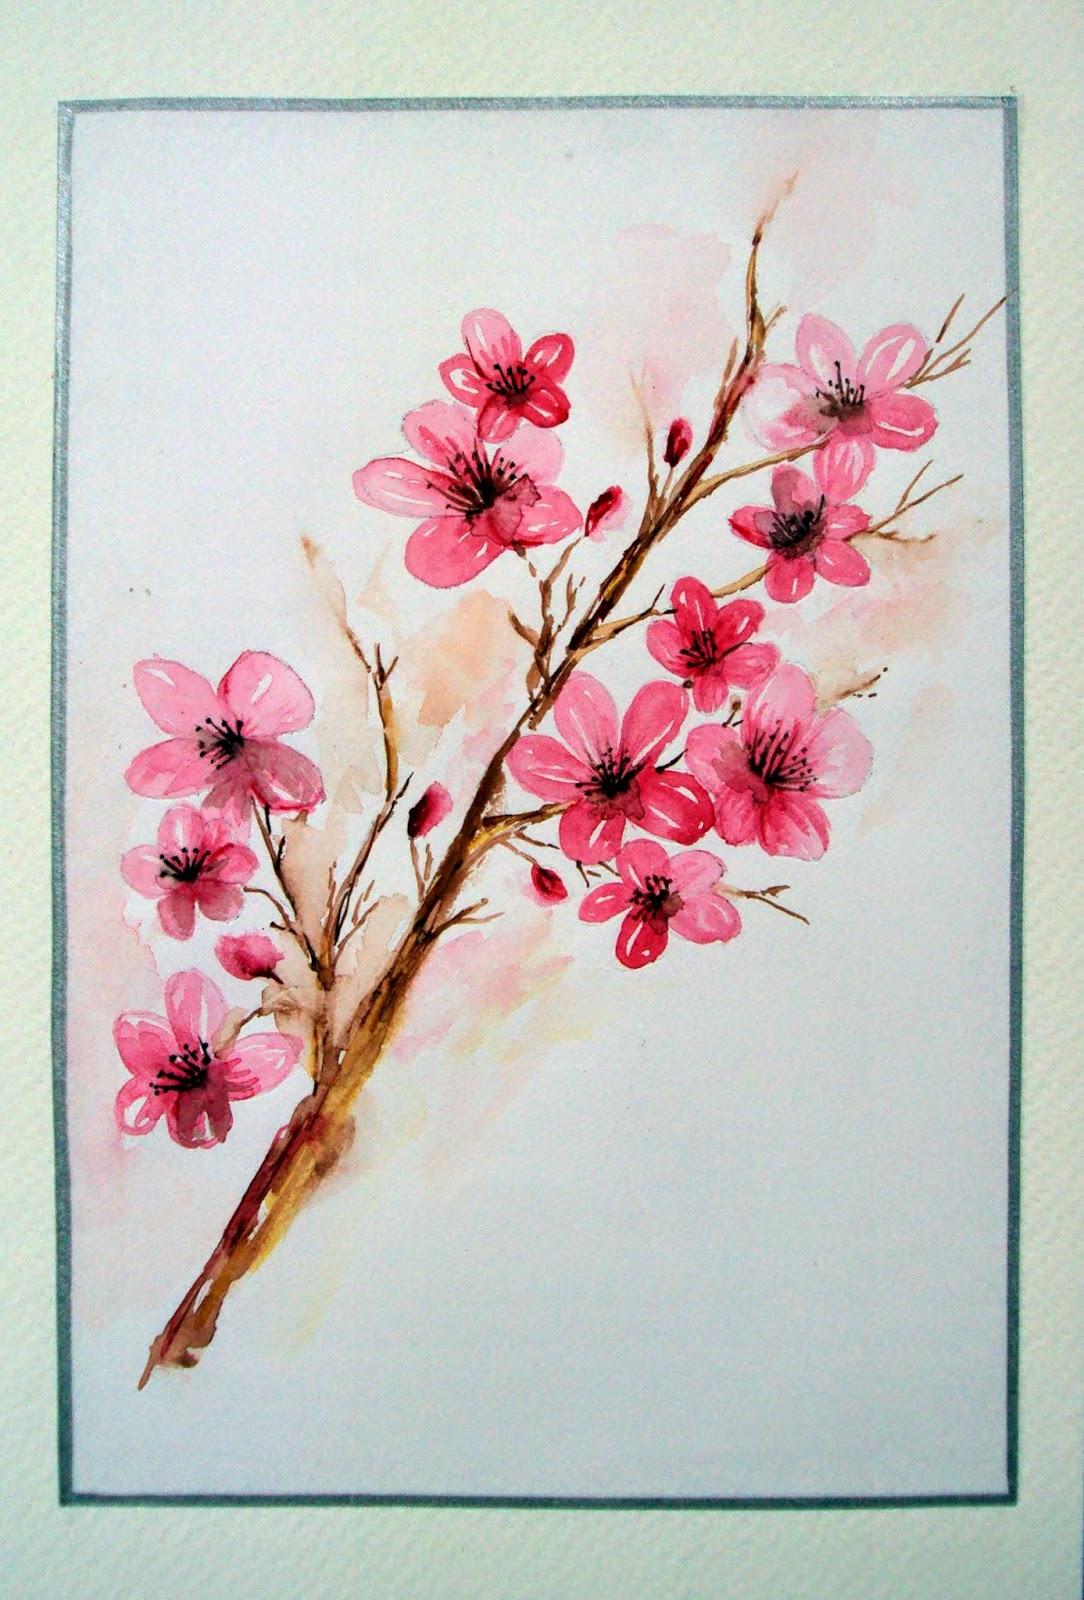 cherry blossoms, pink, flowers, painting, watercolor, singhroha, twig, nature, garden